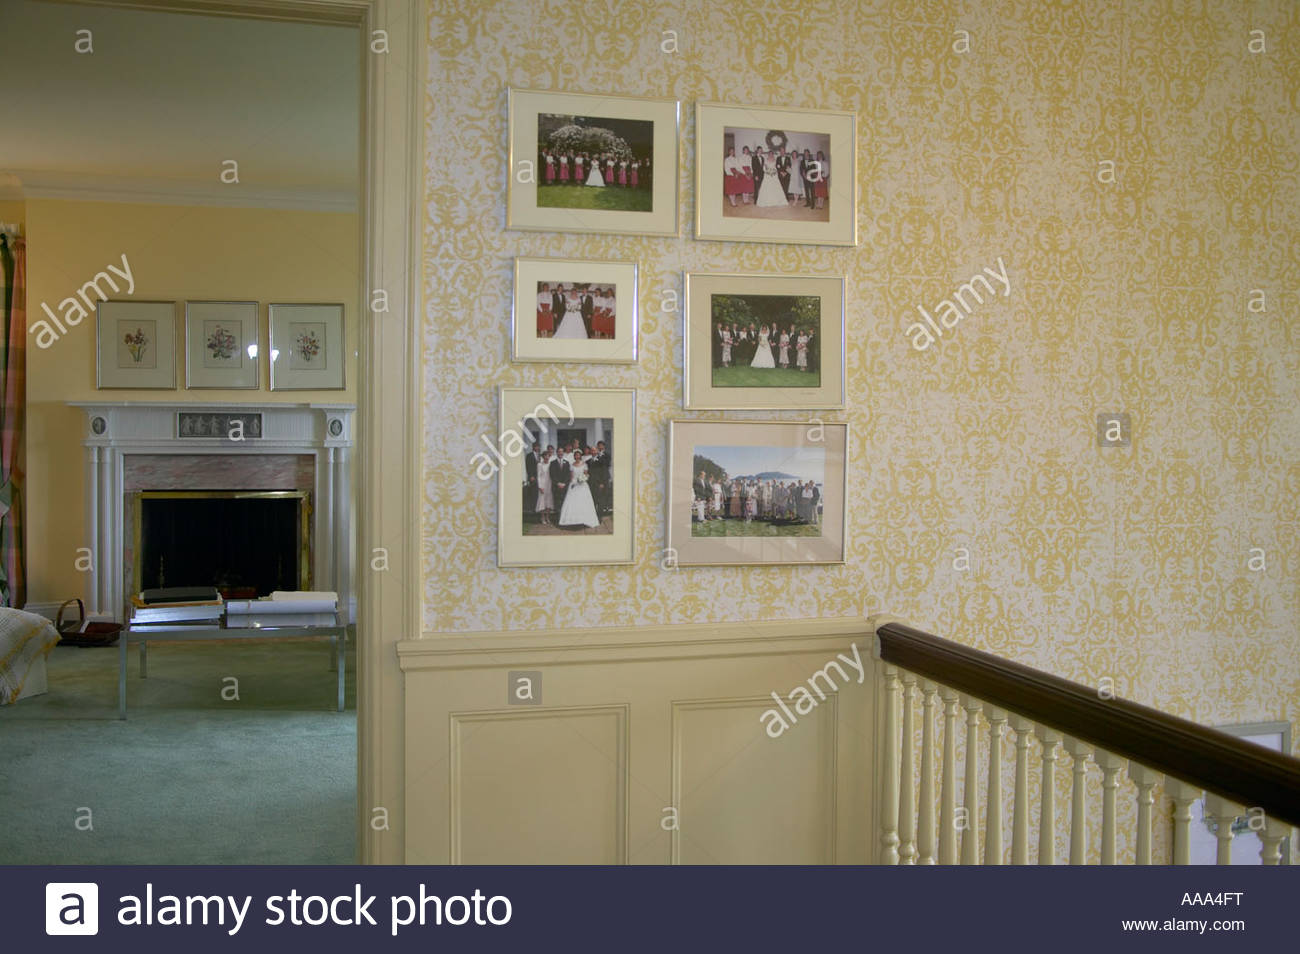 Framed photos mounted on wall - Stock Image